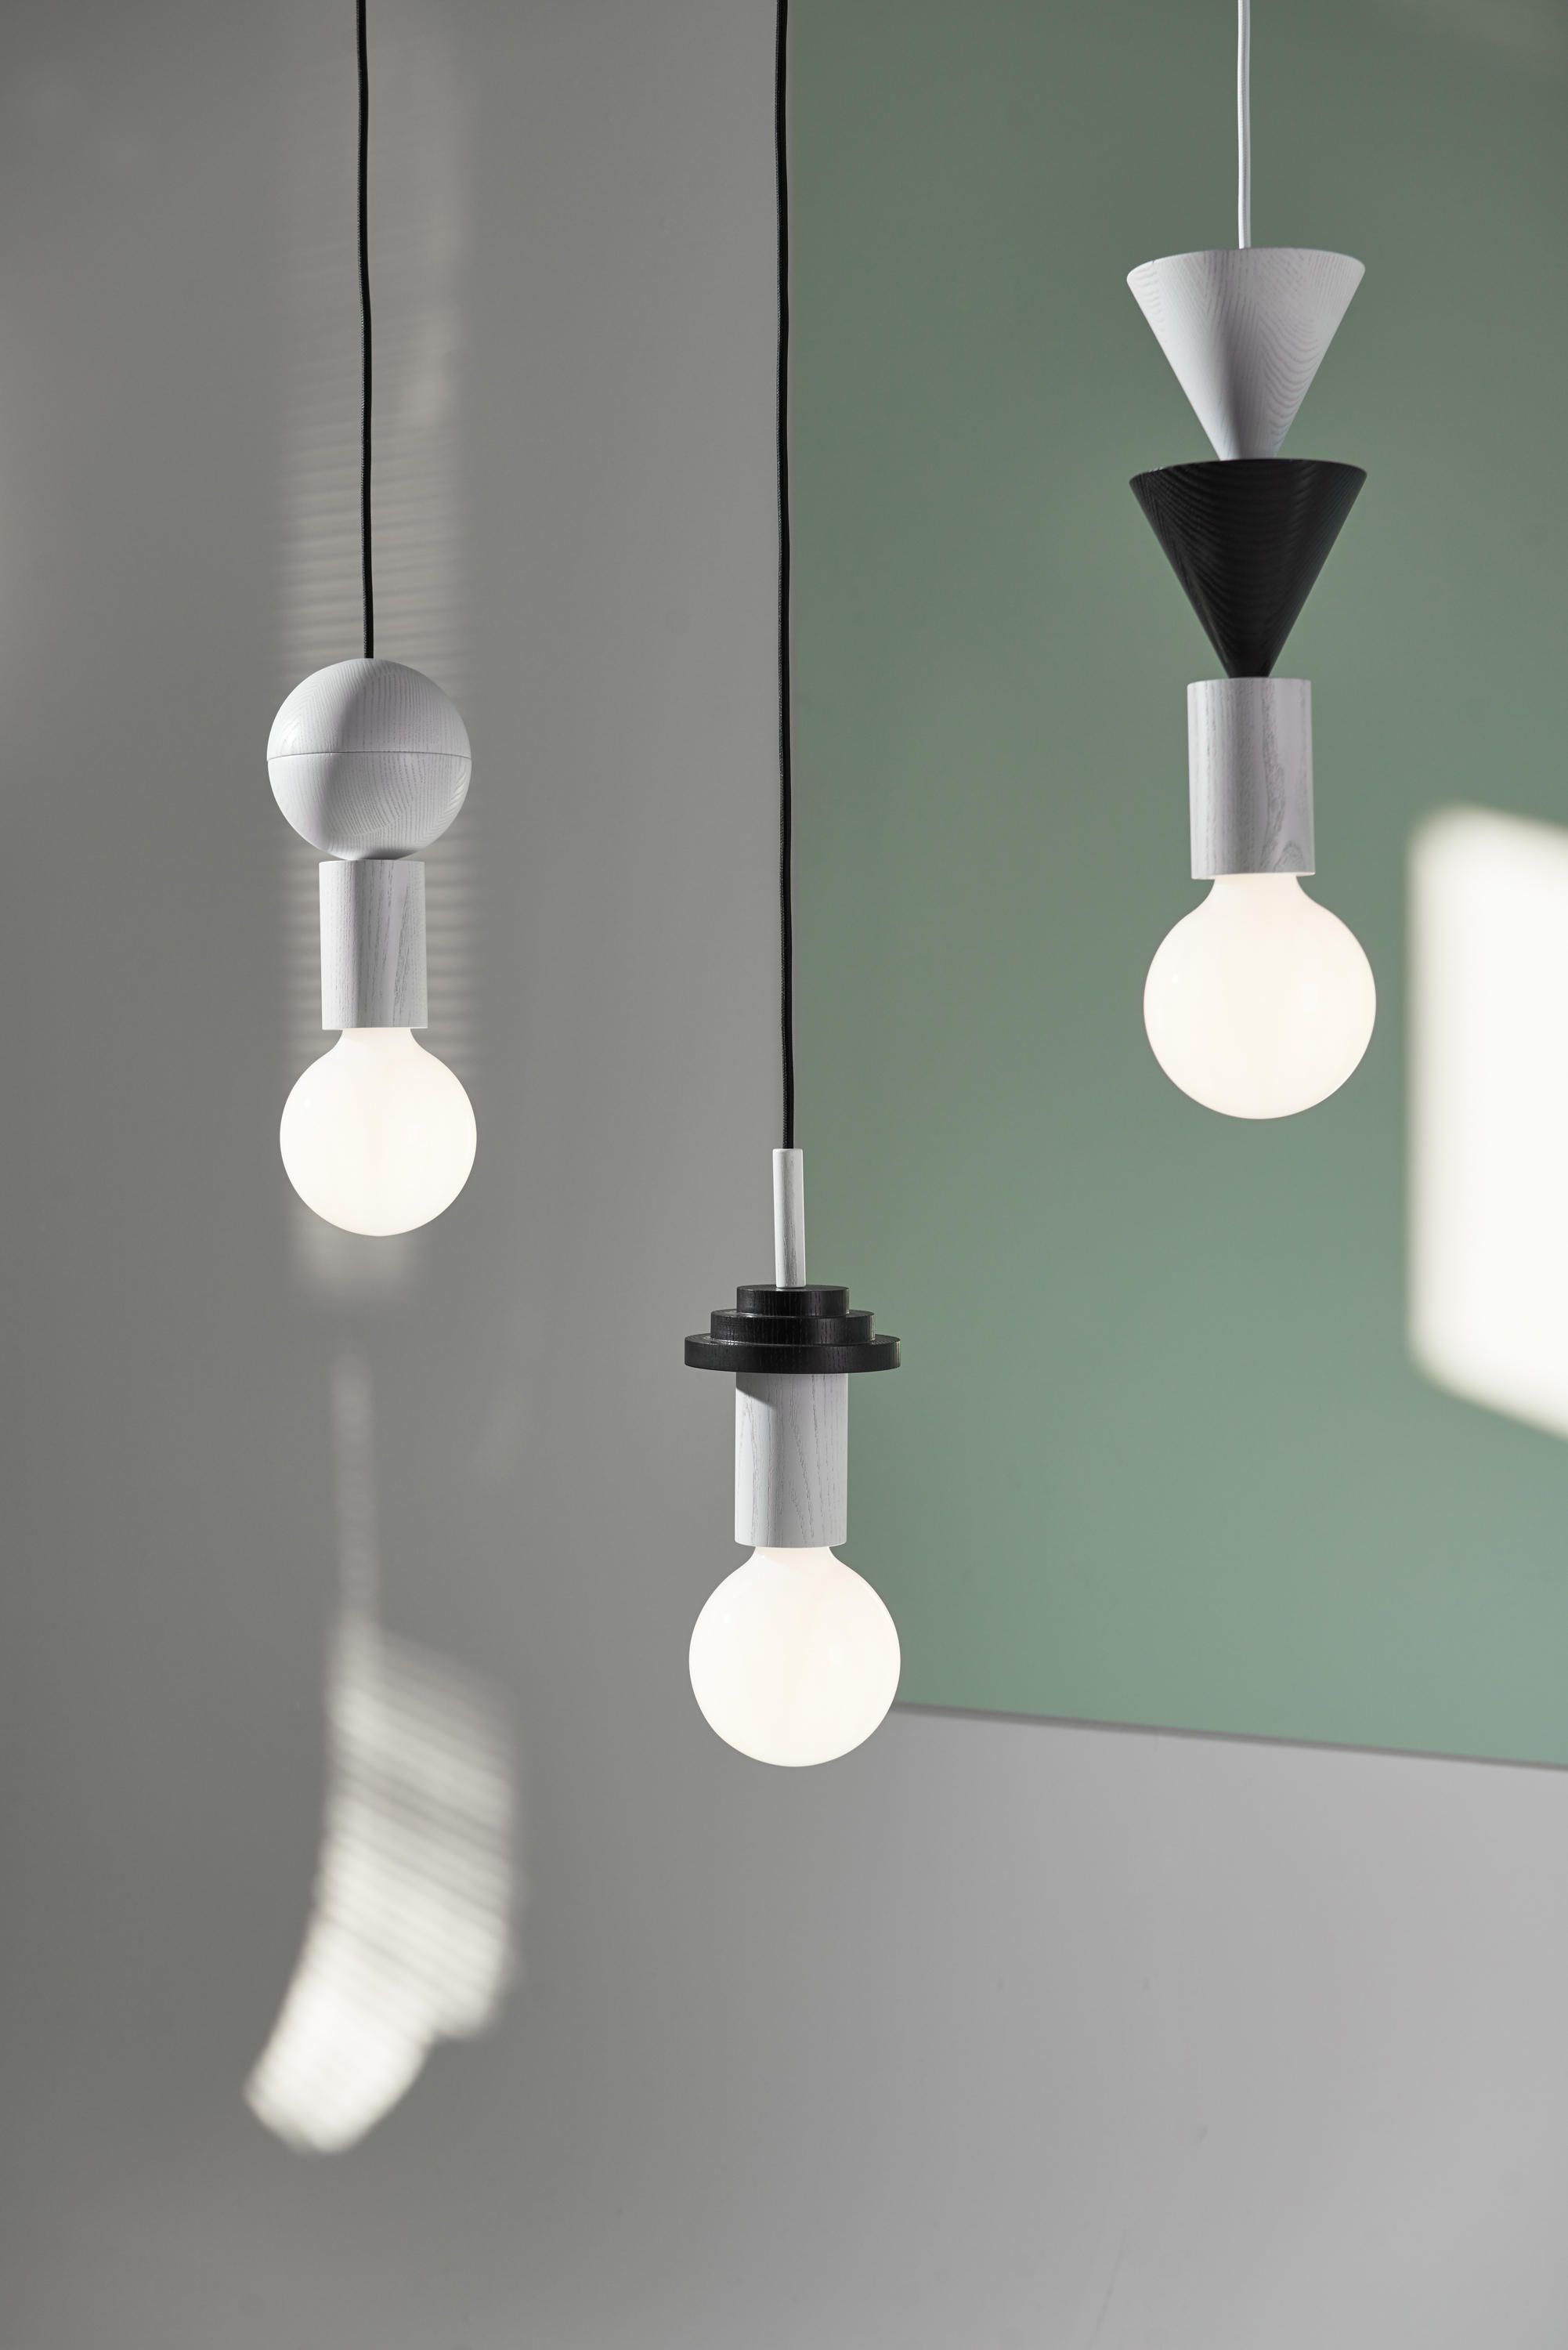 Junit Drop Is A Modular Pendant Lamp That Consists Of